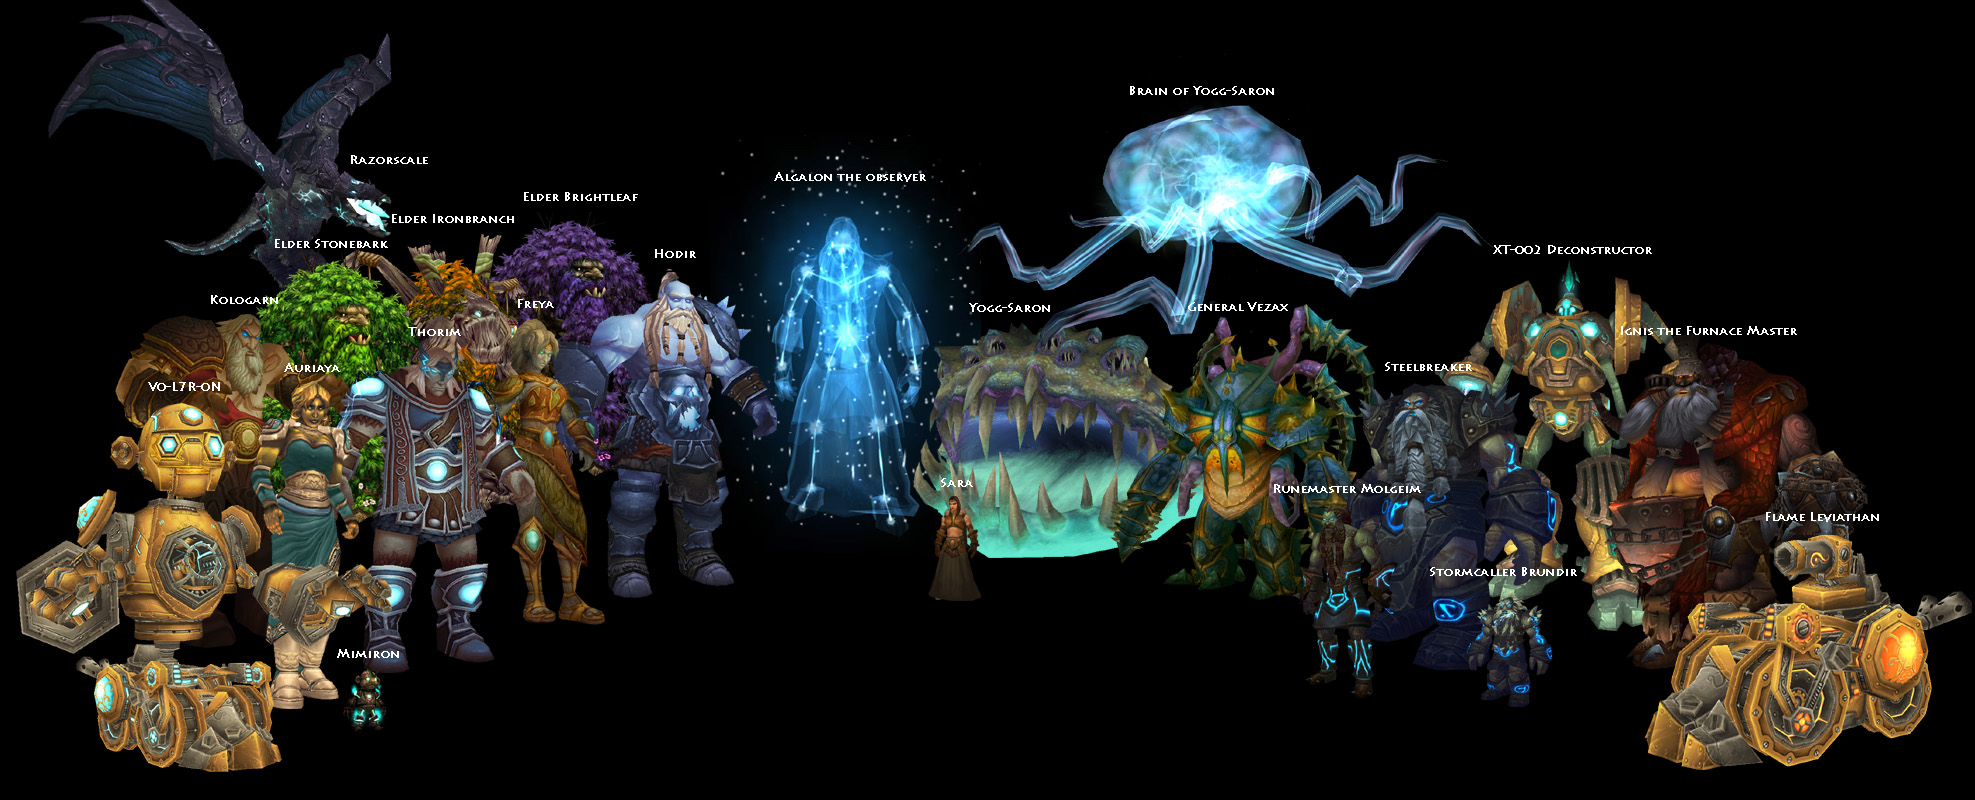 Ulduar instance wowwiki your guide to the world of for Terrace of the endless spring location